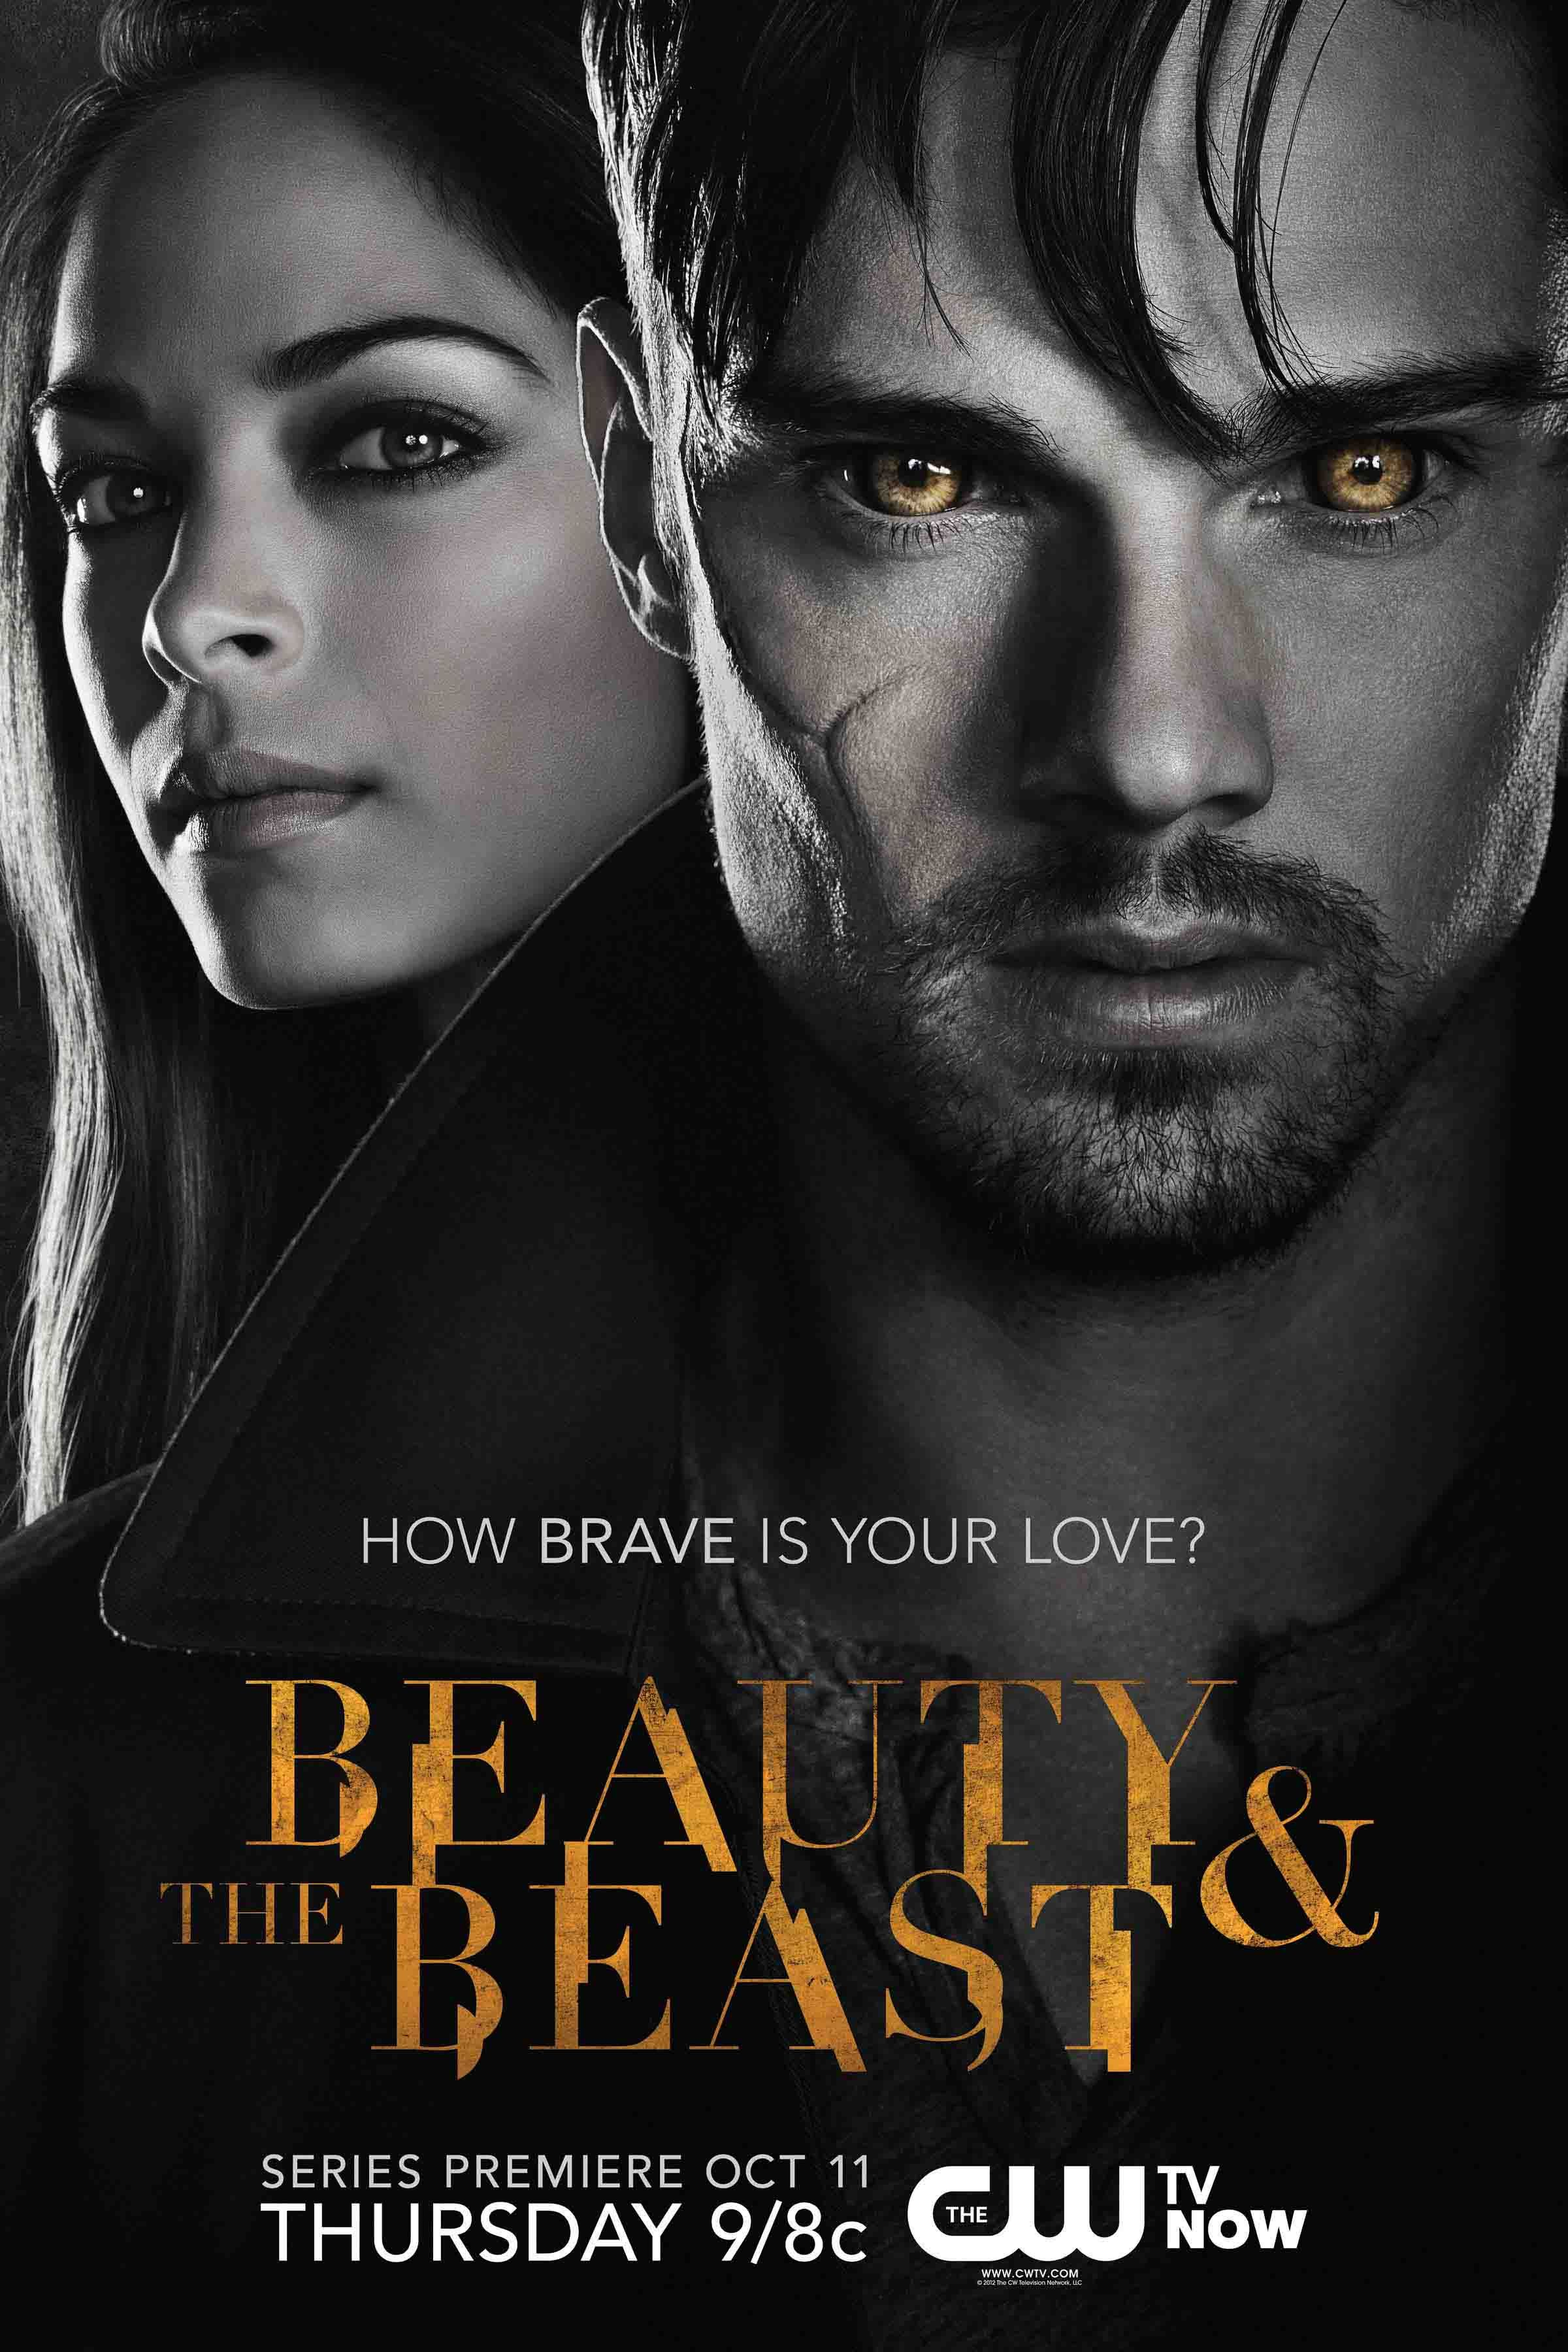 Beauty And The Beast Premieres Thursday Oct 11 On The Cw